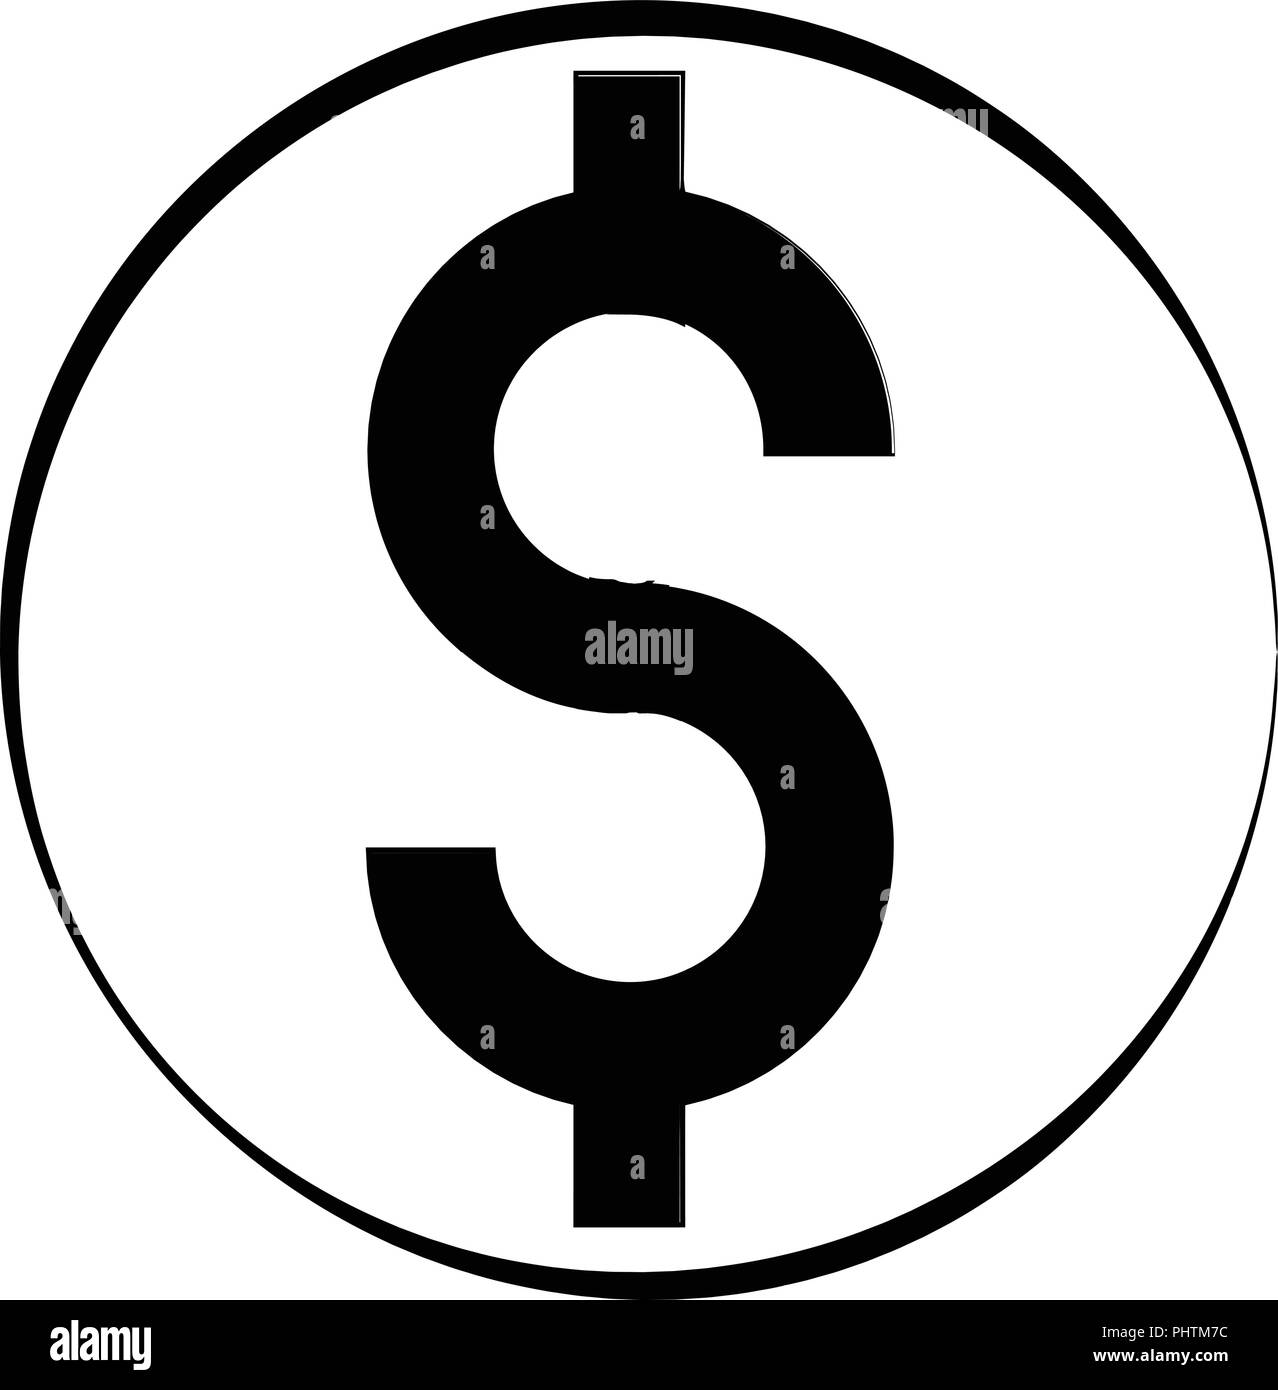 Minimalistic dollar symbol in black and white easy to customize